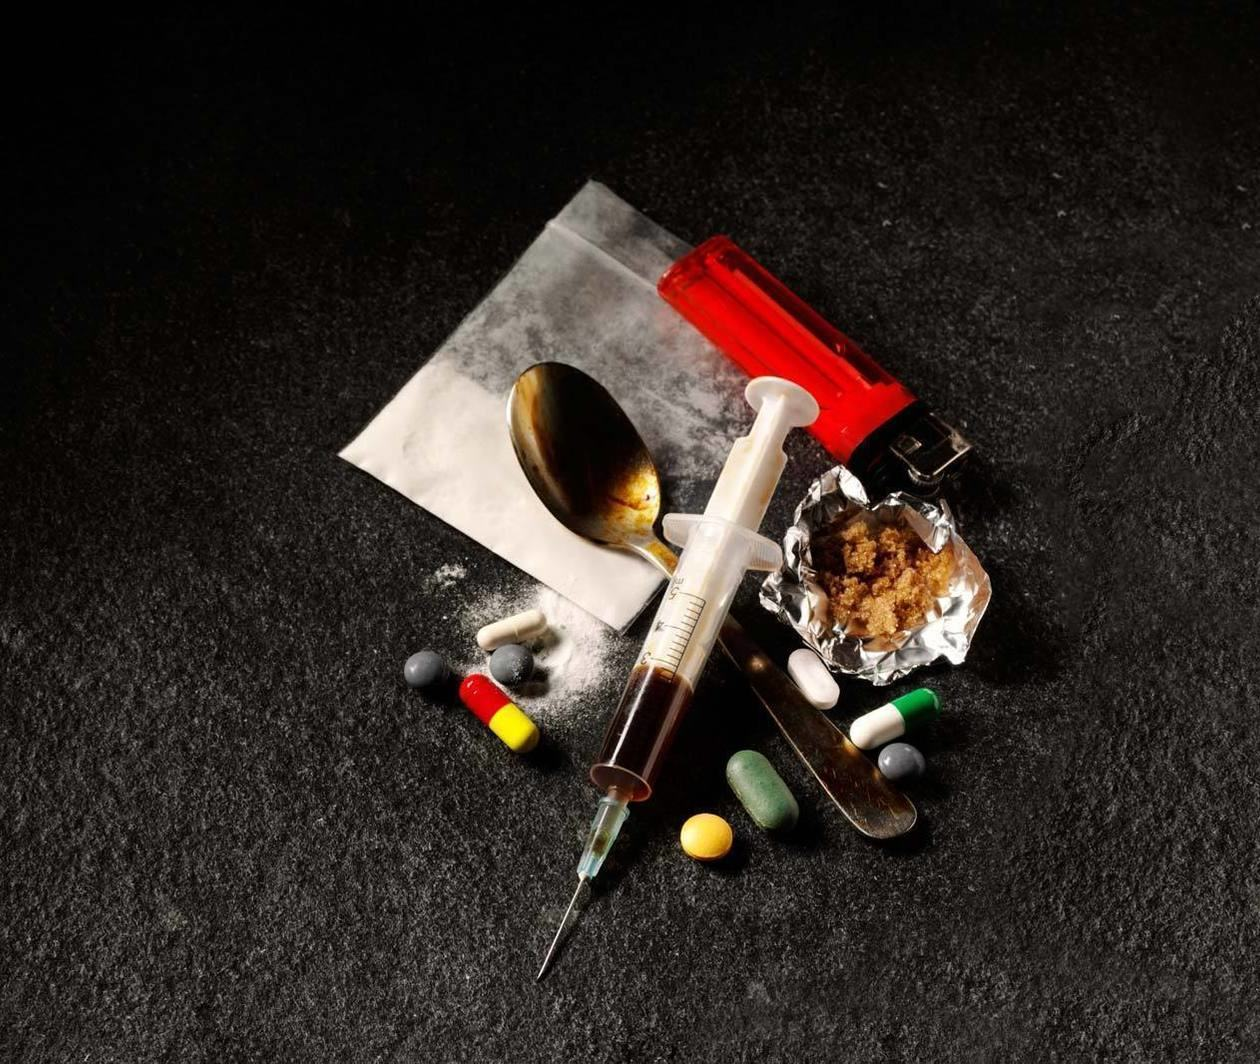 Understanding Drugs and Addiction